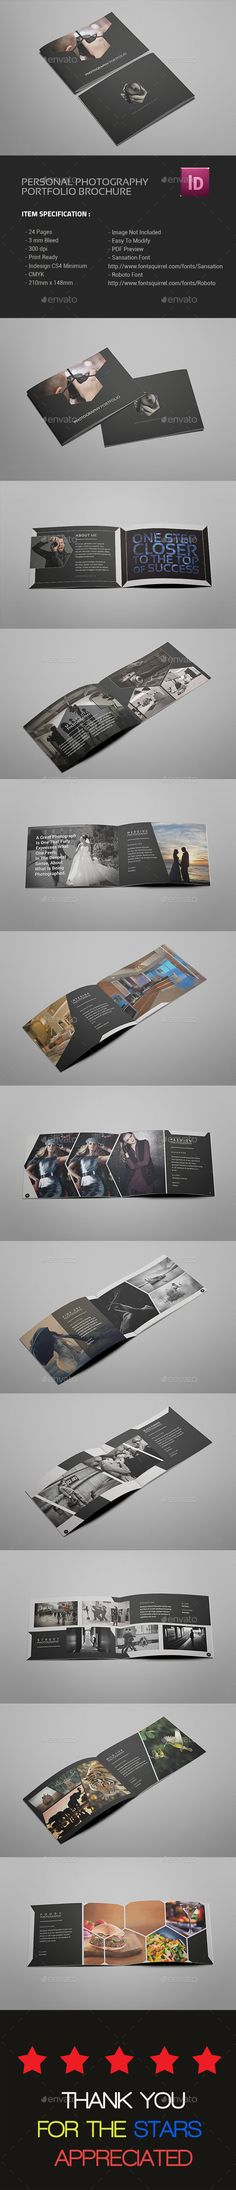 A5 Photography Portfolio Brochure Template InDesign INDD. Download here: http://graphicriver.net/item/a5-photography-portfolio-brochure/14585334?ref=ksioks